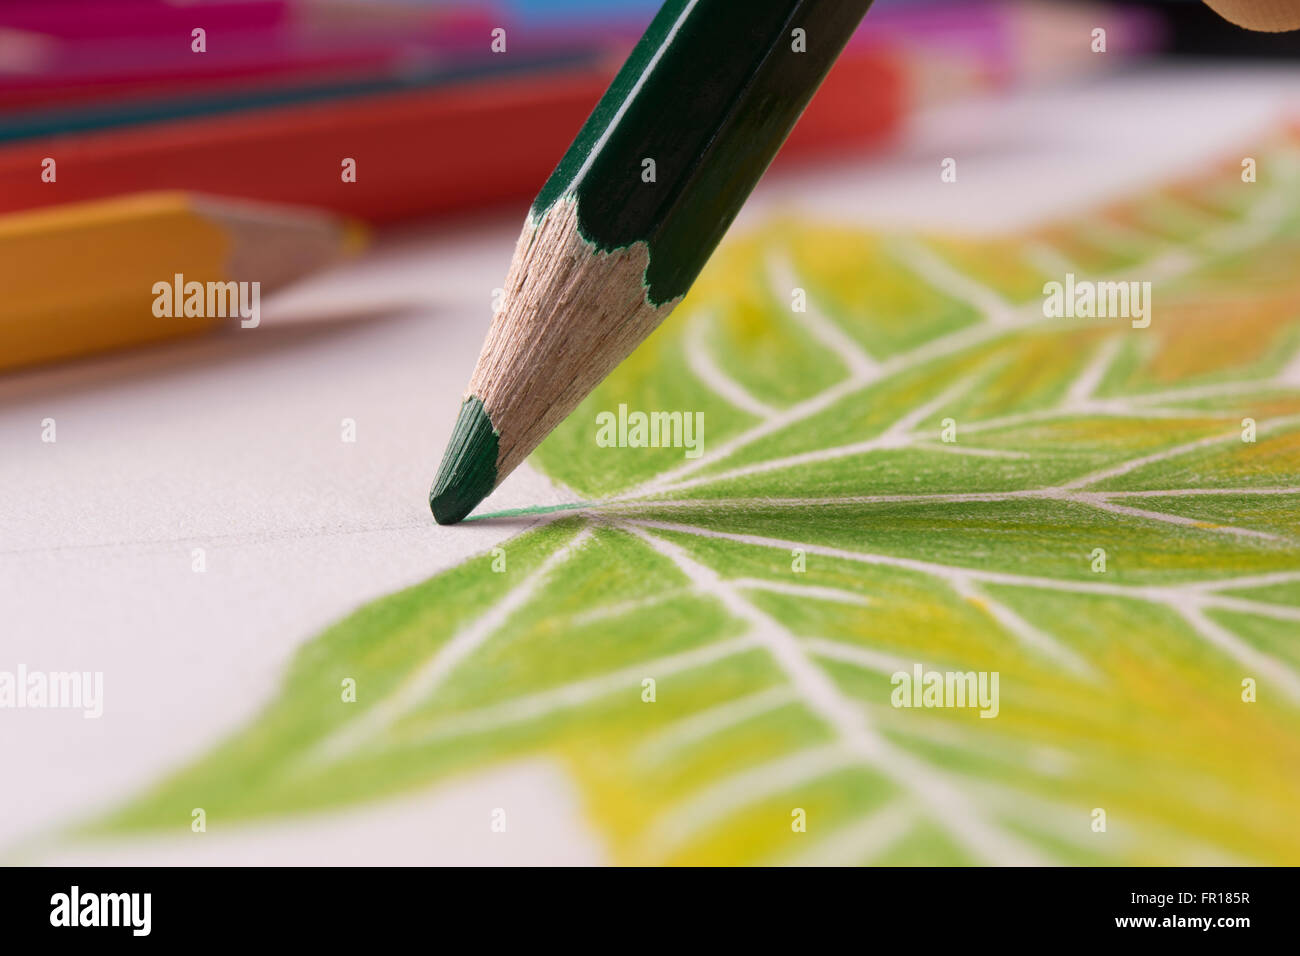 Drawing Leaf With Green Color Pencil Stock Photo Alamy